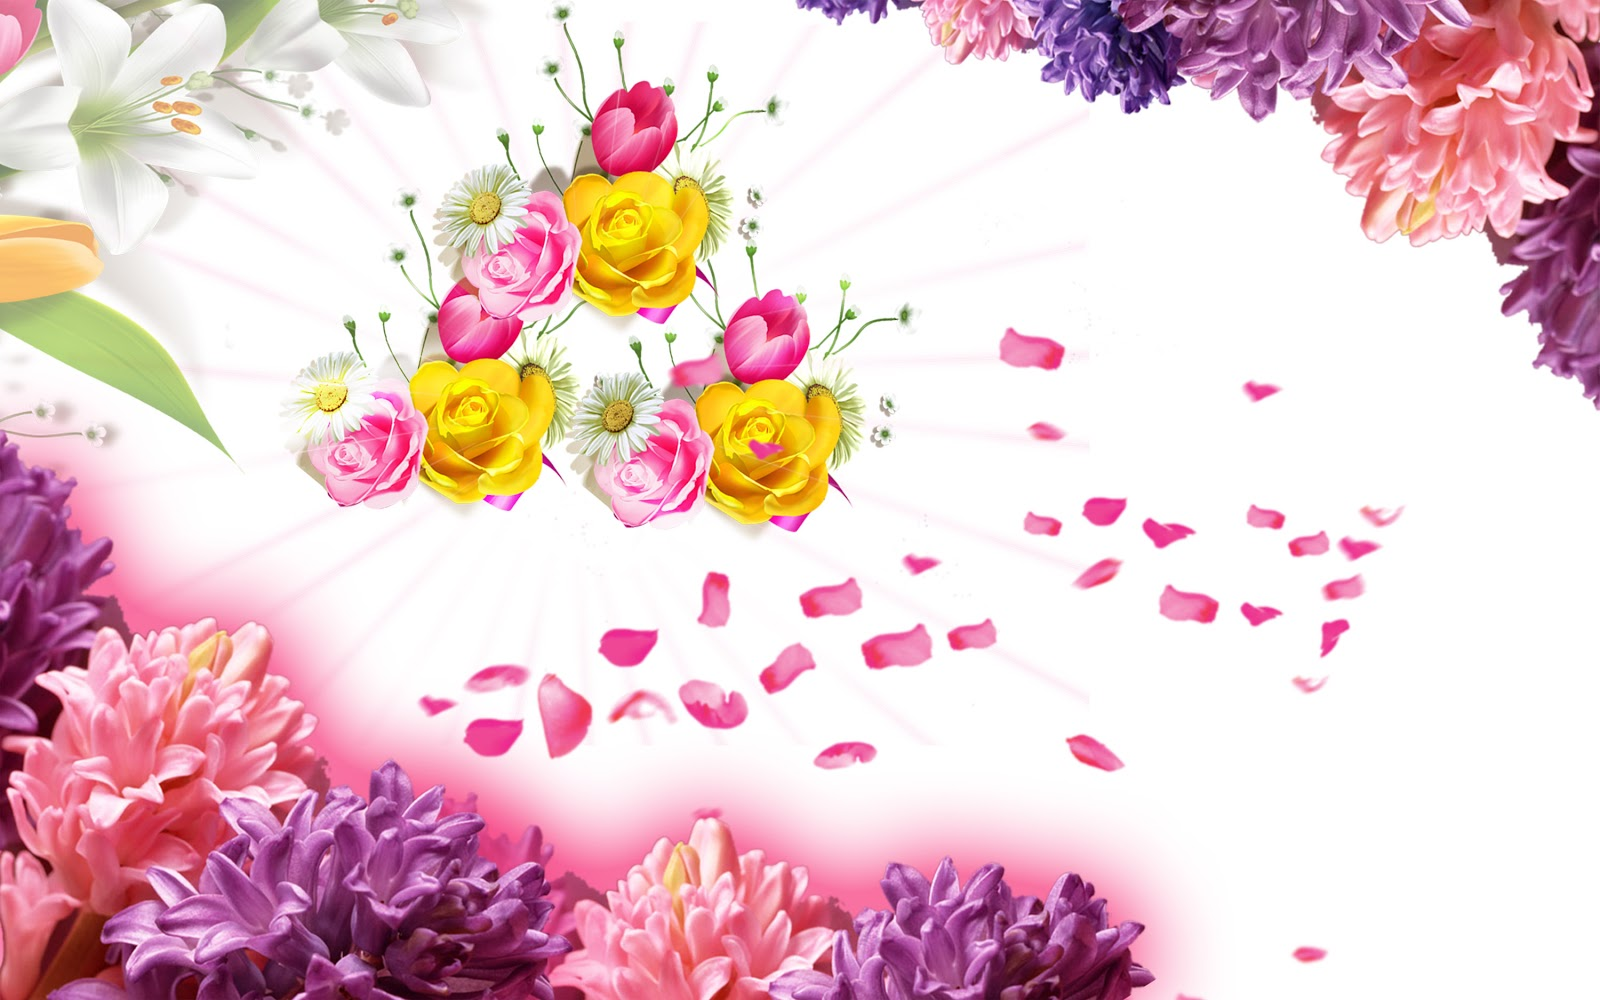 Top Background Flower Images For Photoshop Top Collection Of